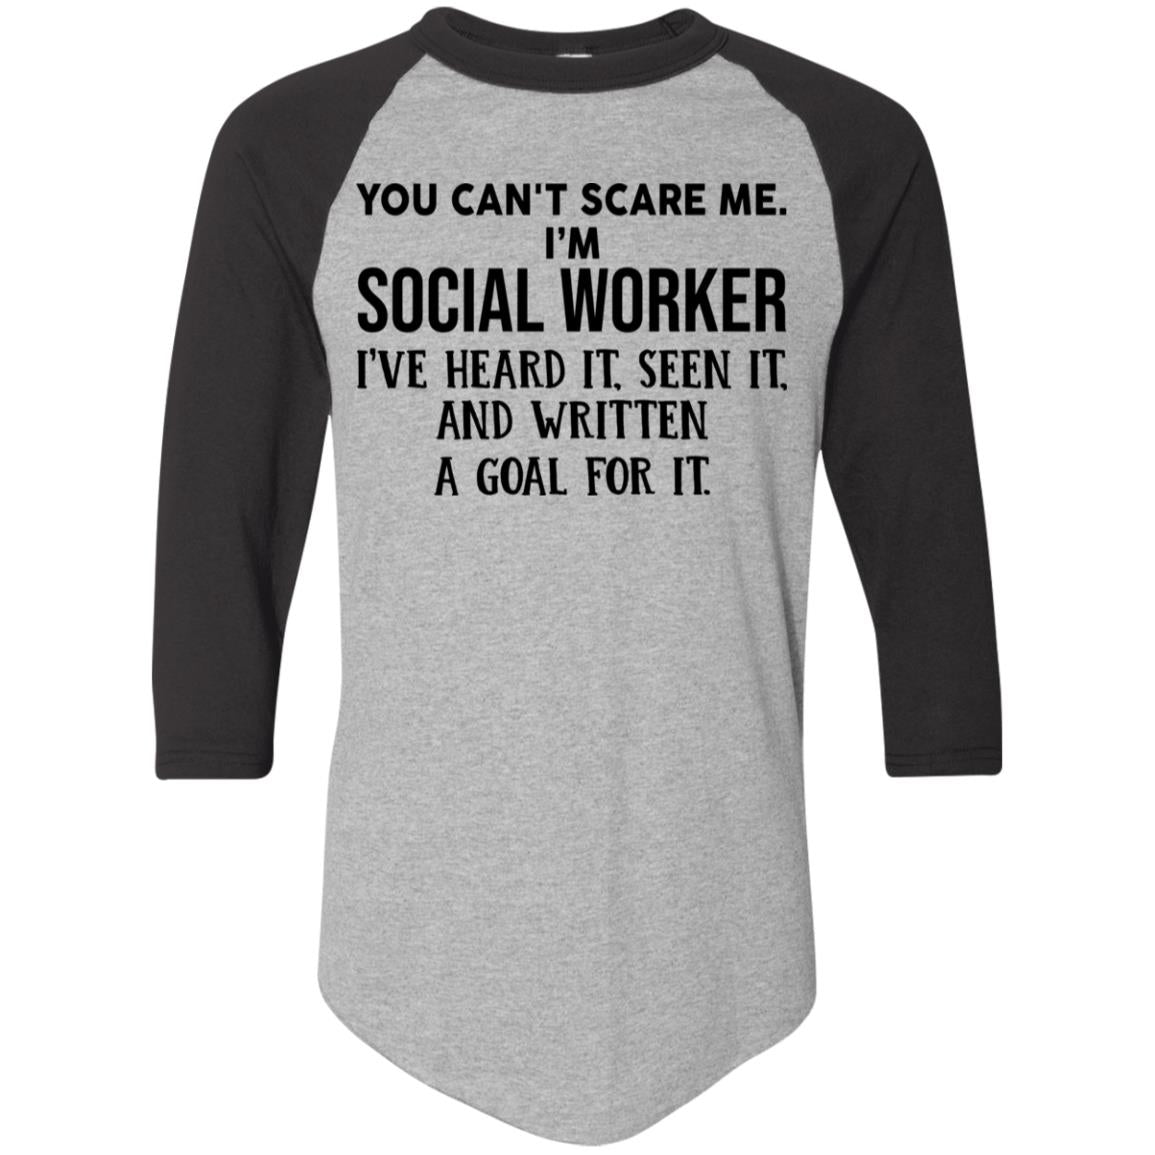 You can't scare me I'm social worker I've heard it seen it